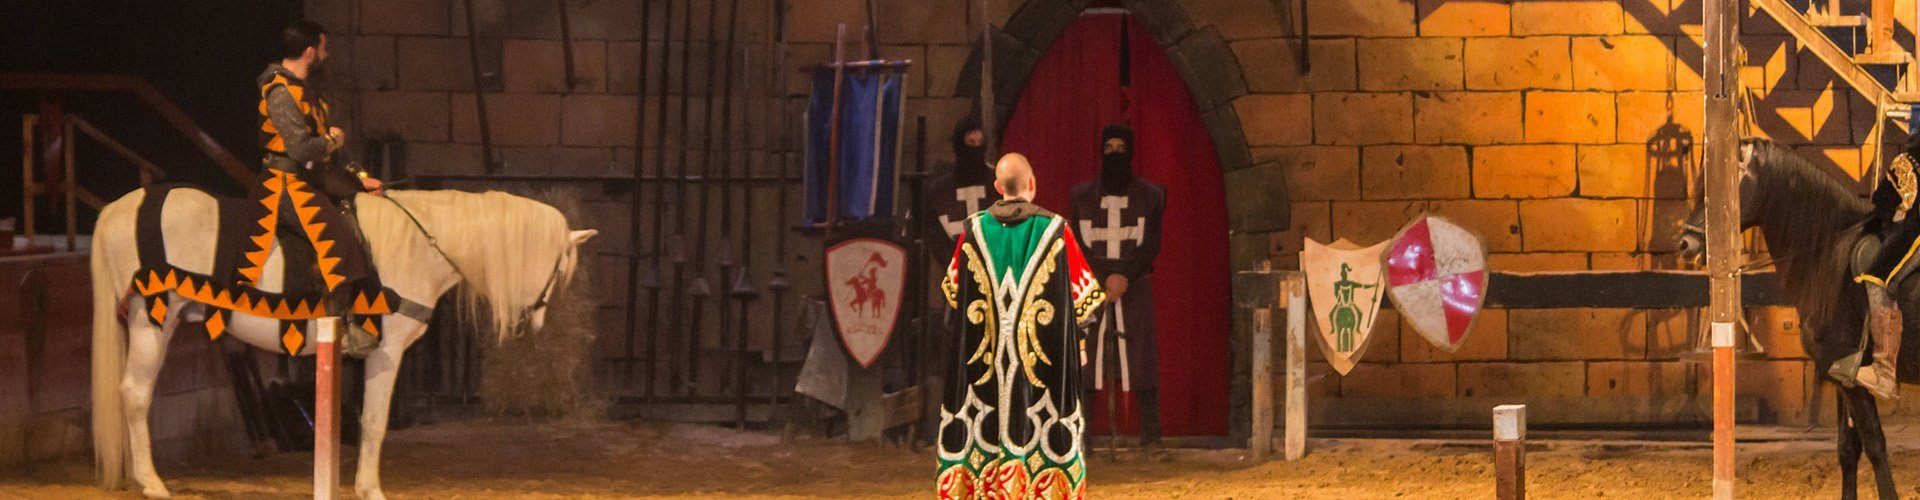 Magic Aqua Desafío Medieval - Alfaz del Pi  - Eventos